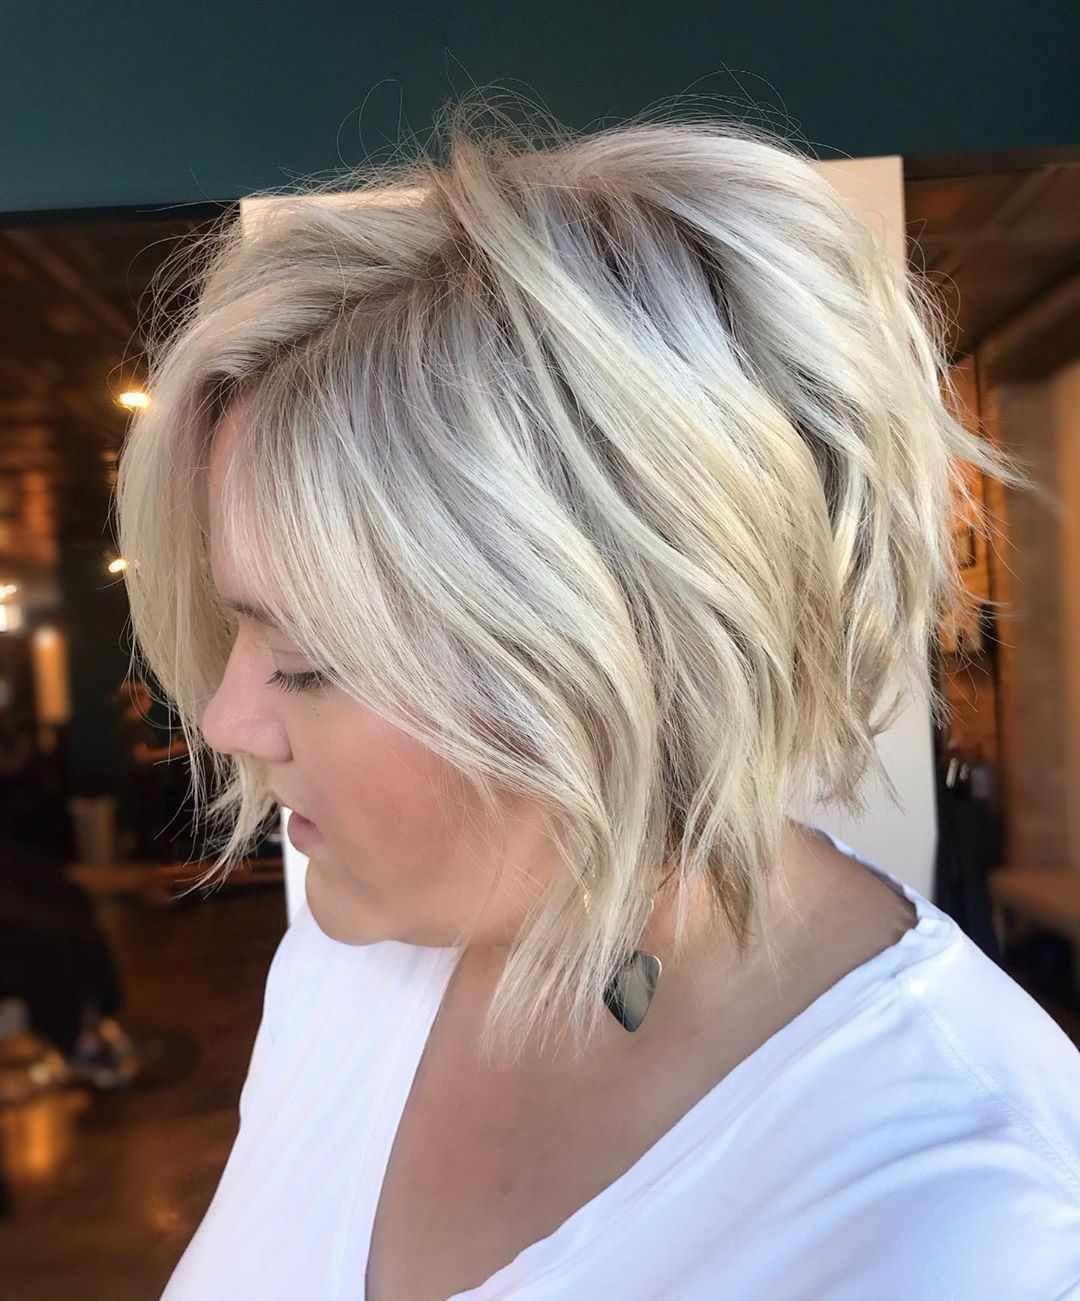 50 Latest Pixie And Bob Haircuts For Women Cute Hairstyles 2019 Bobhaircut Bobpixie Haircut For Thick Hair Thick Hair Styles Bob Haircuts For Women